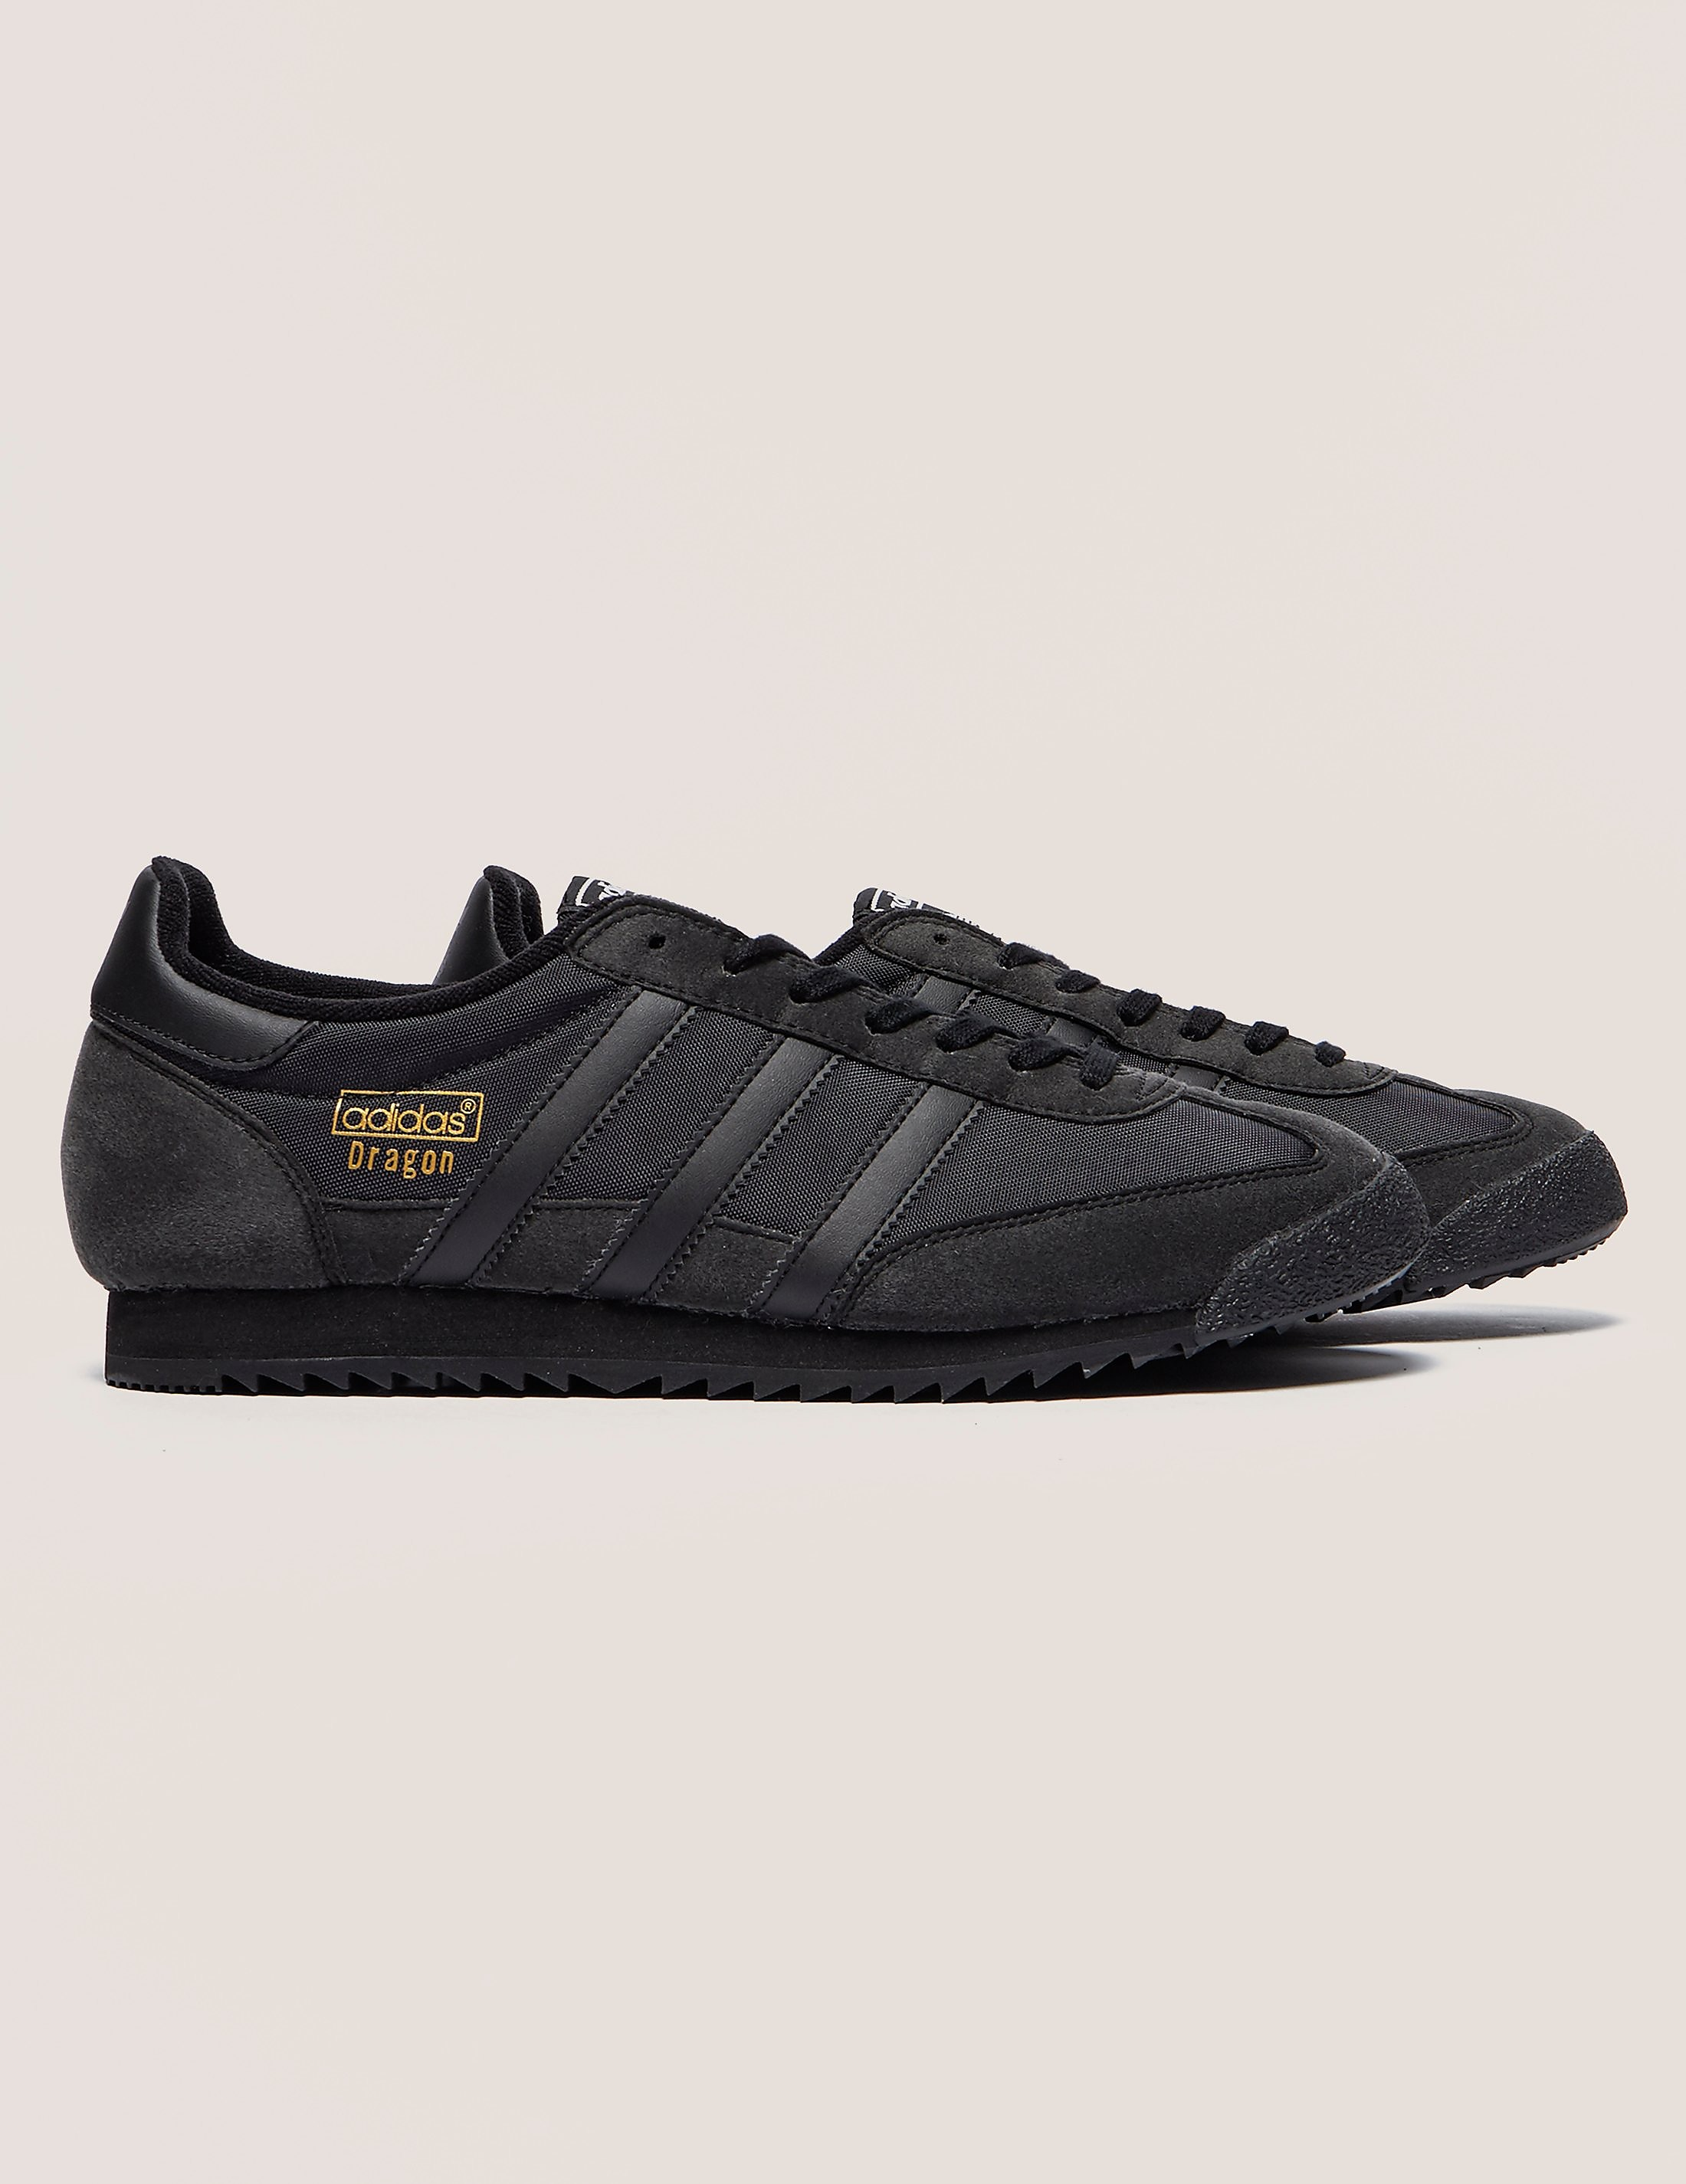 adidas Originals Dragon OG